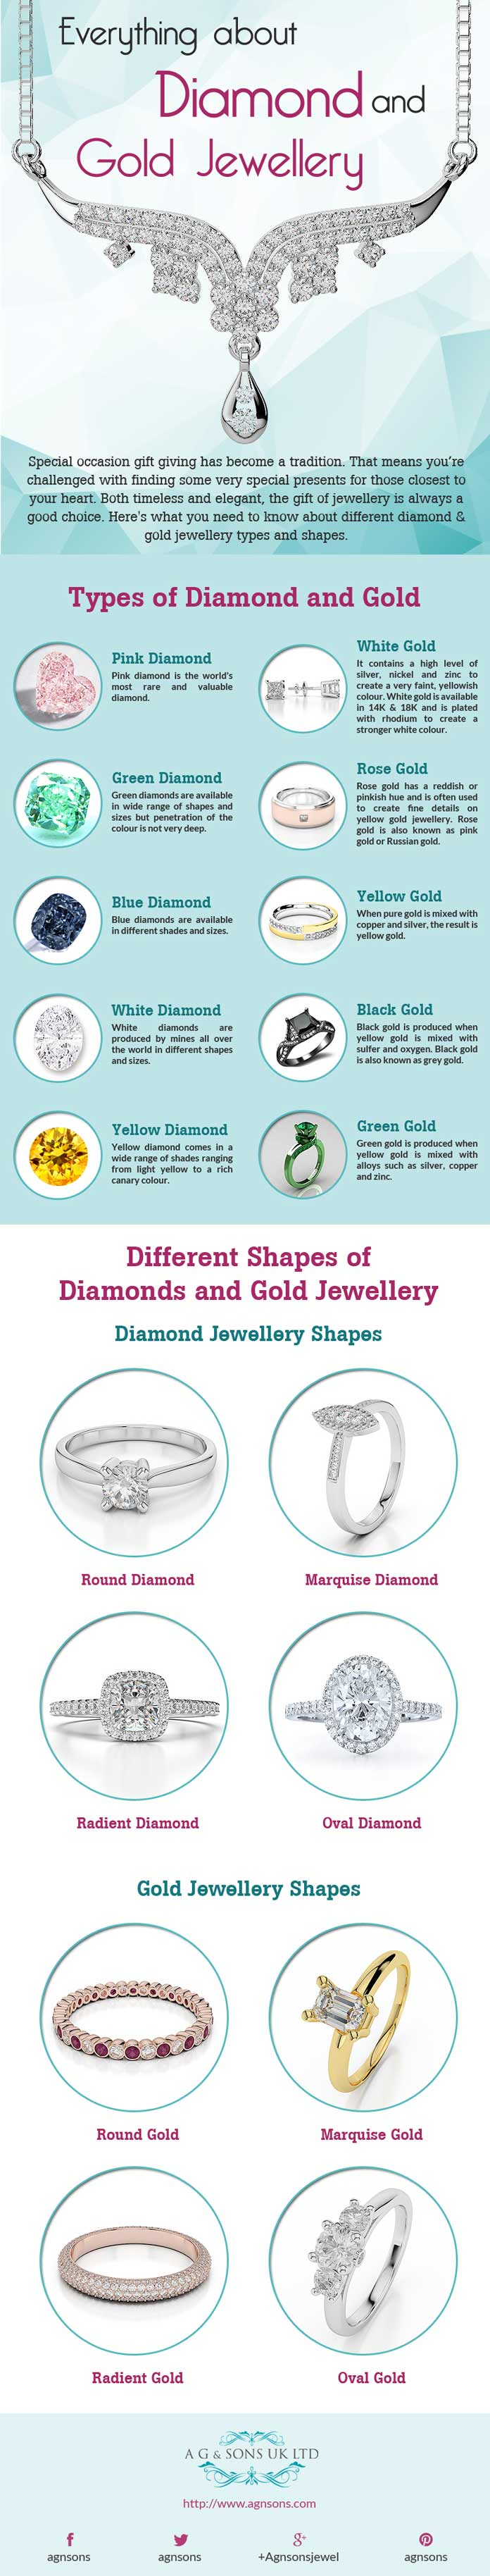 Everything-About-Diamond-and-Gold-Jewellery